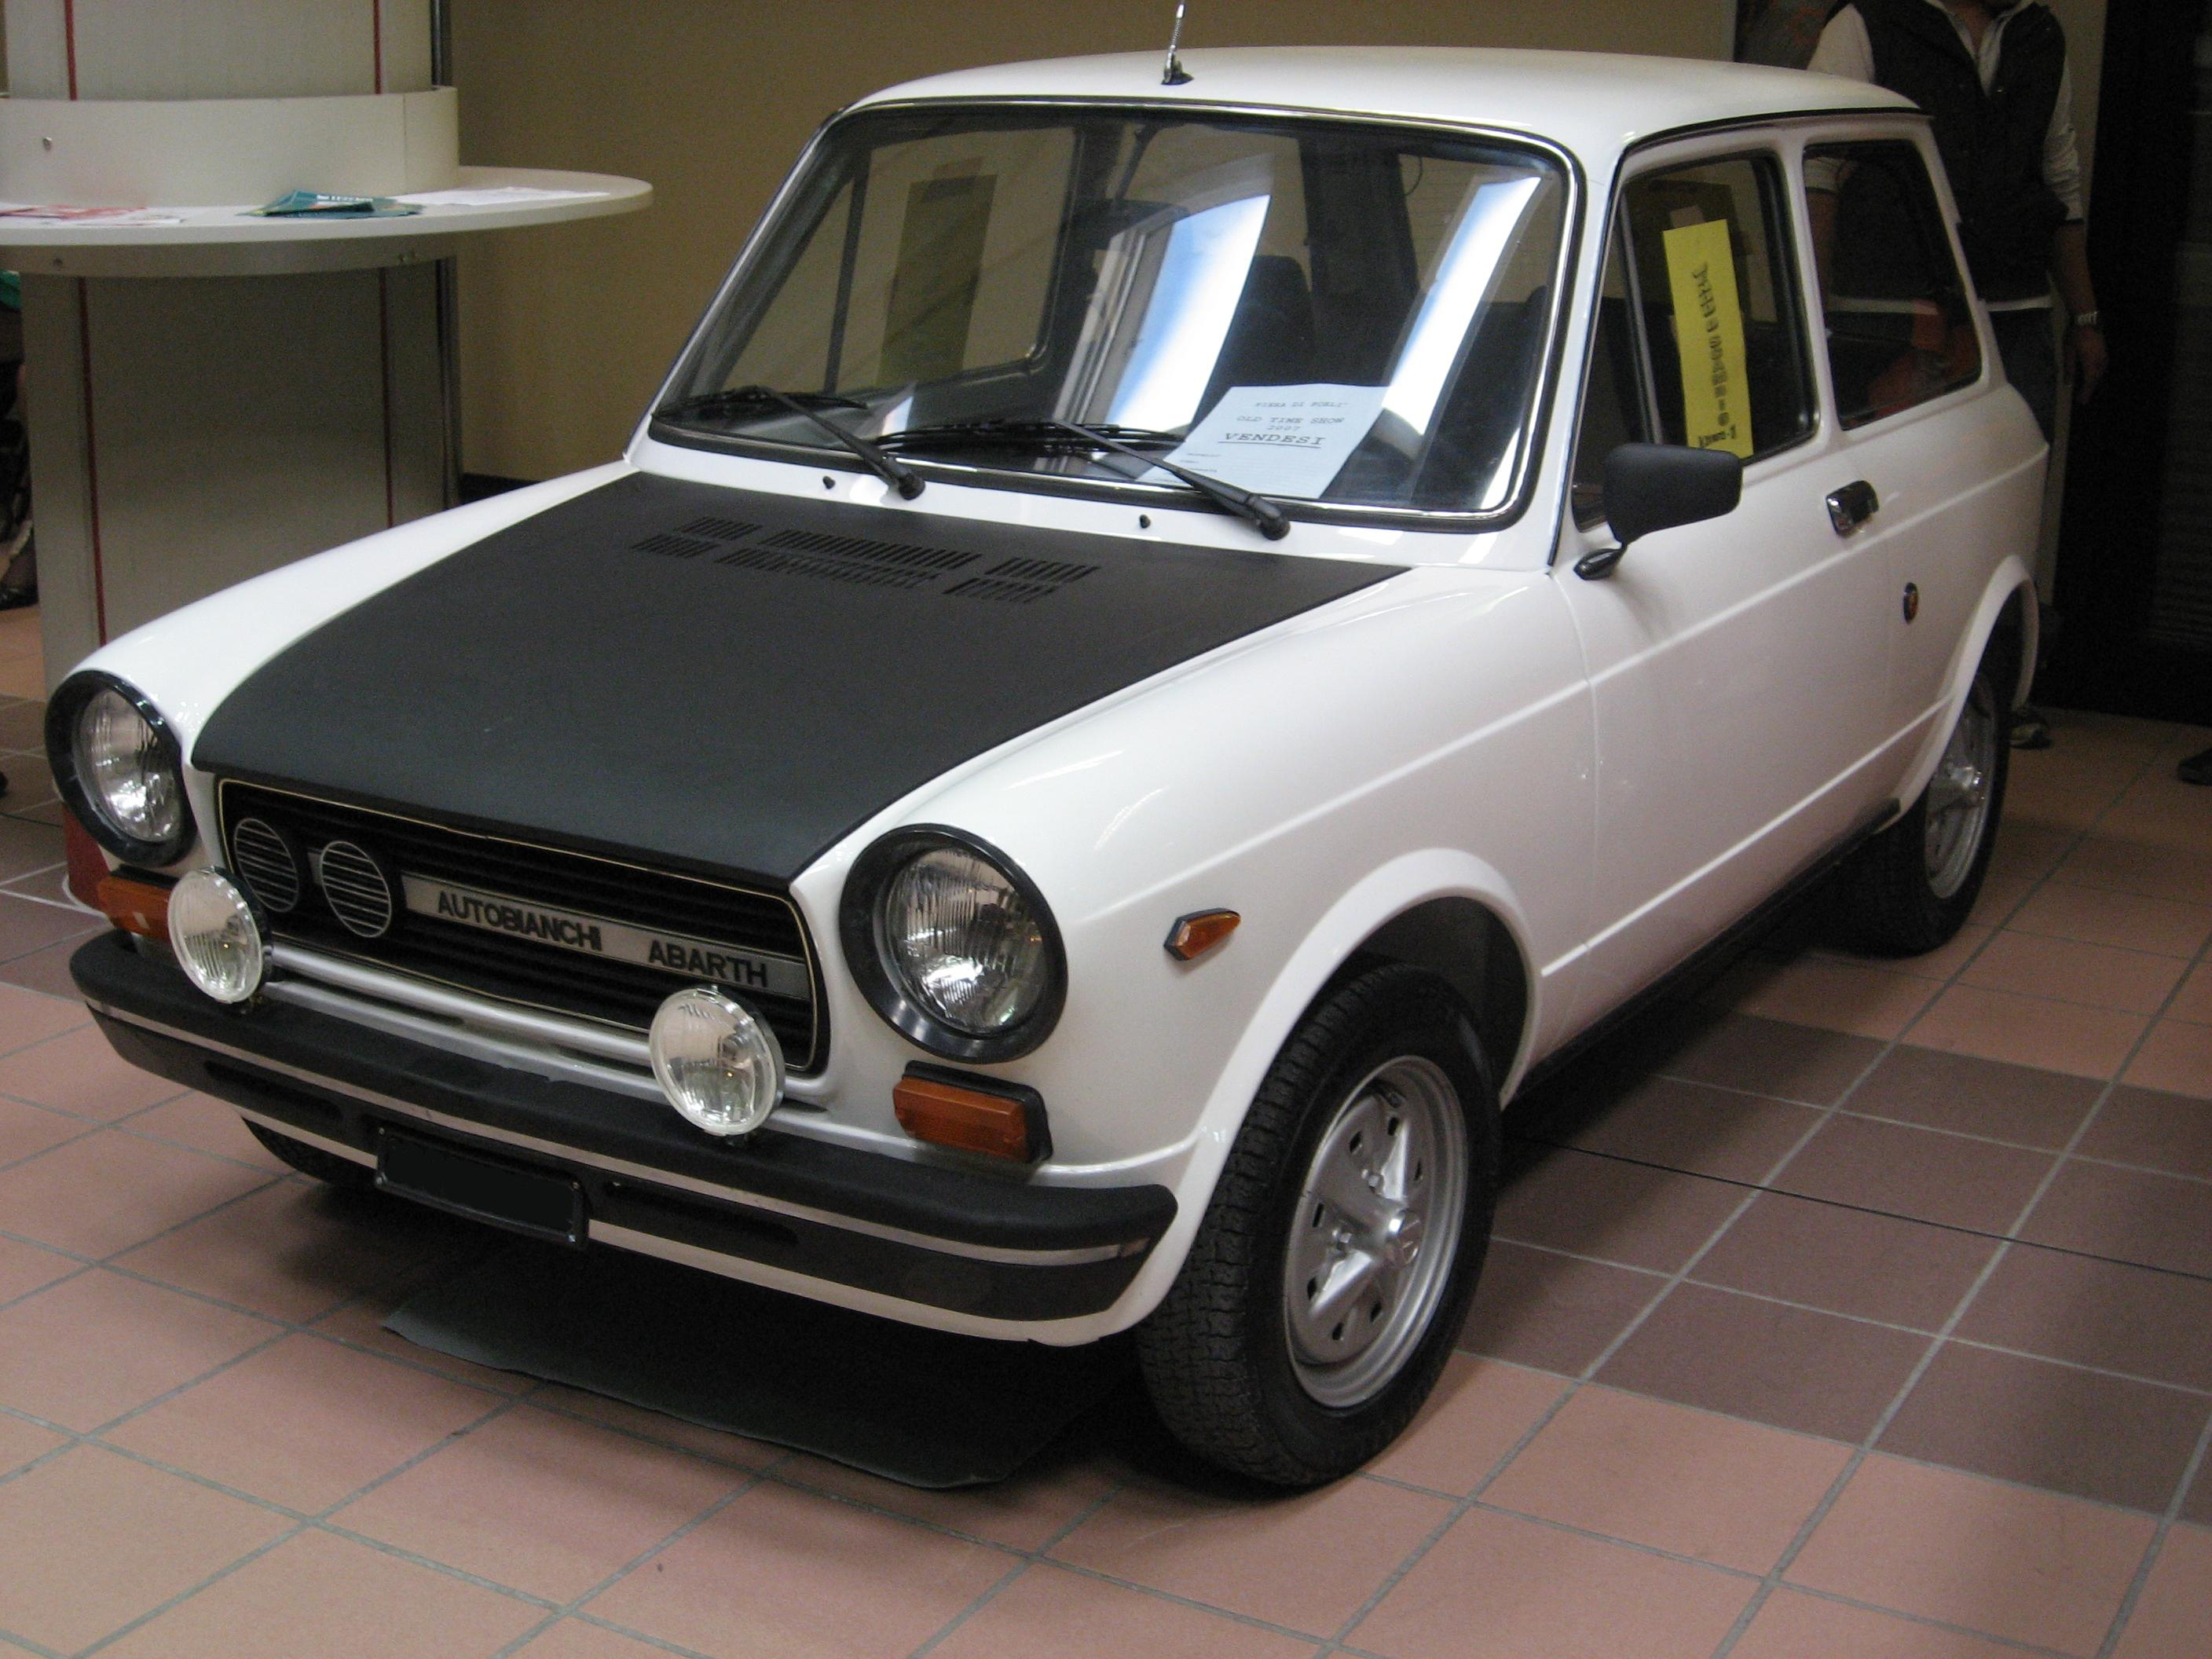 File:Autobianchi A112-Abarth.JPG - Wikimedia Commons